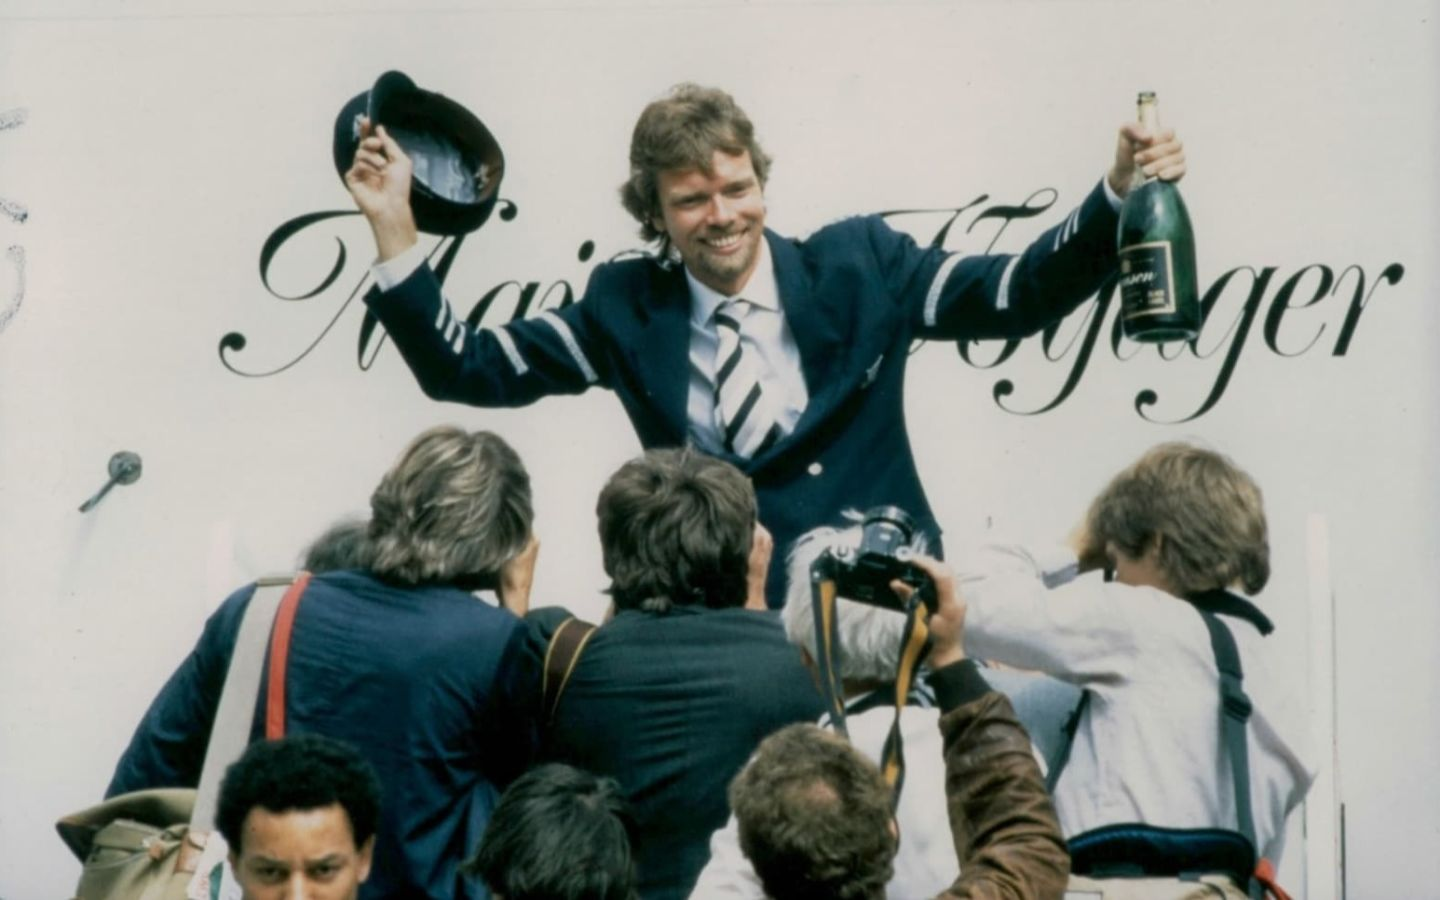 Richard Branson celebrates Virgin Atlantic's inaugural flight in 1984 with champagne in front of photographers